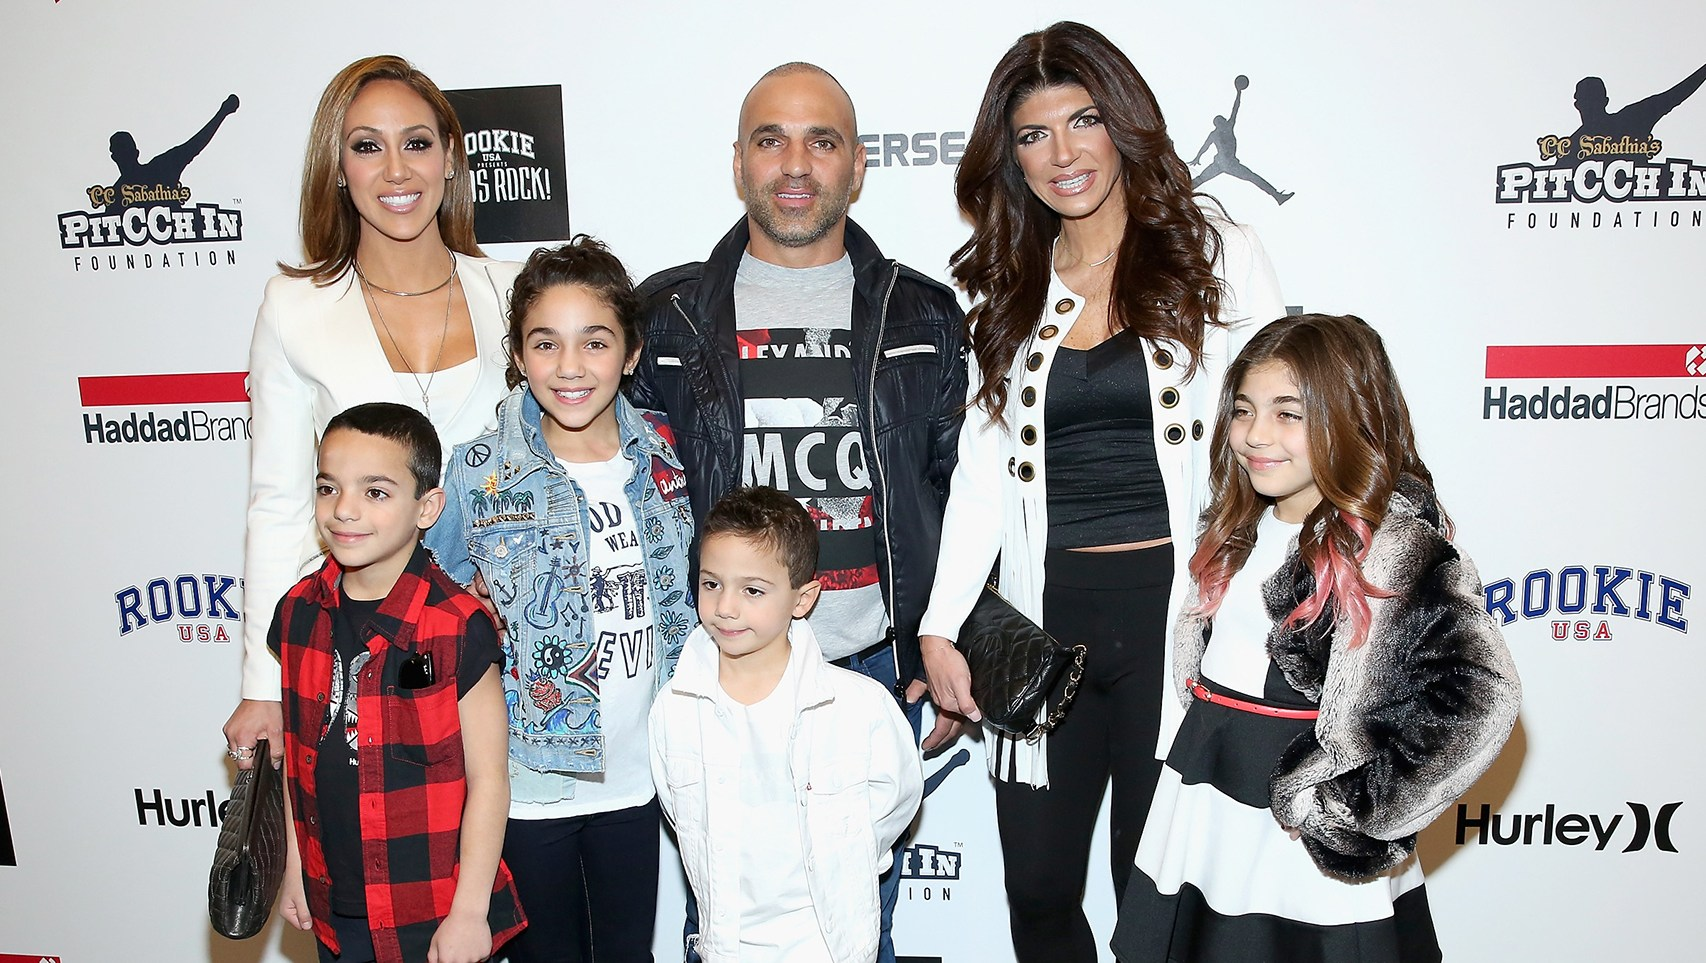 Joe Gorga Gives an Update on Nieces After Joe Giudice's Release Into ICE Custody: 'They Need Their Dad'